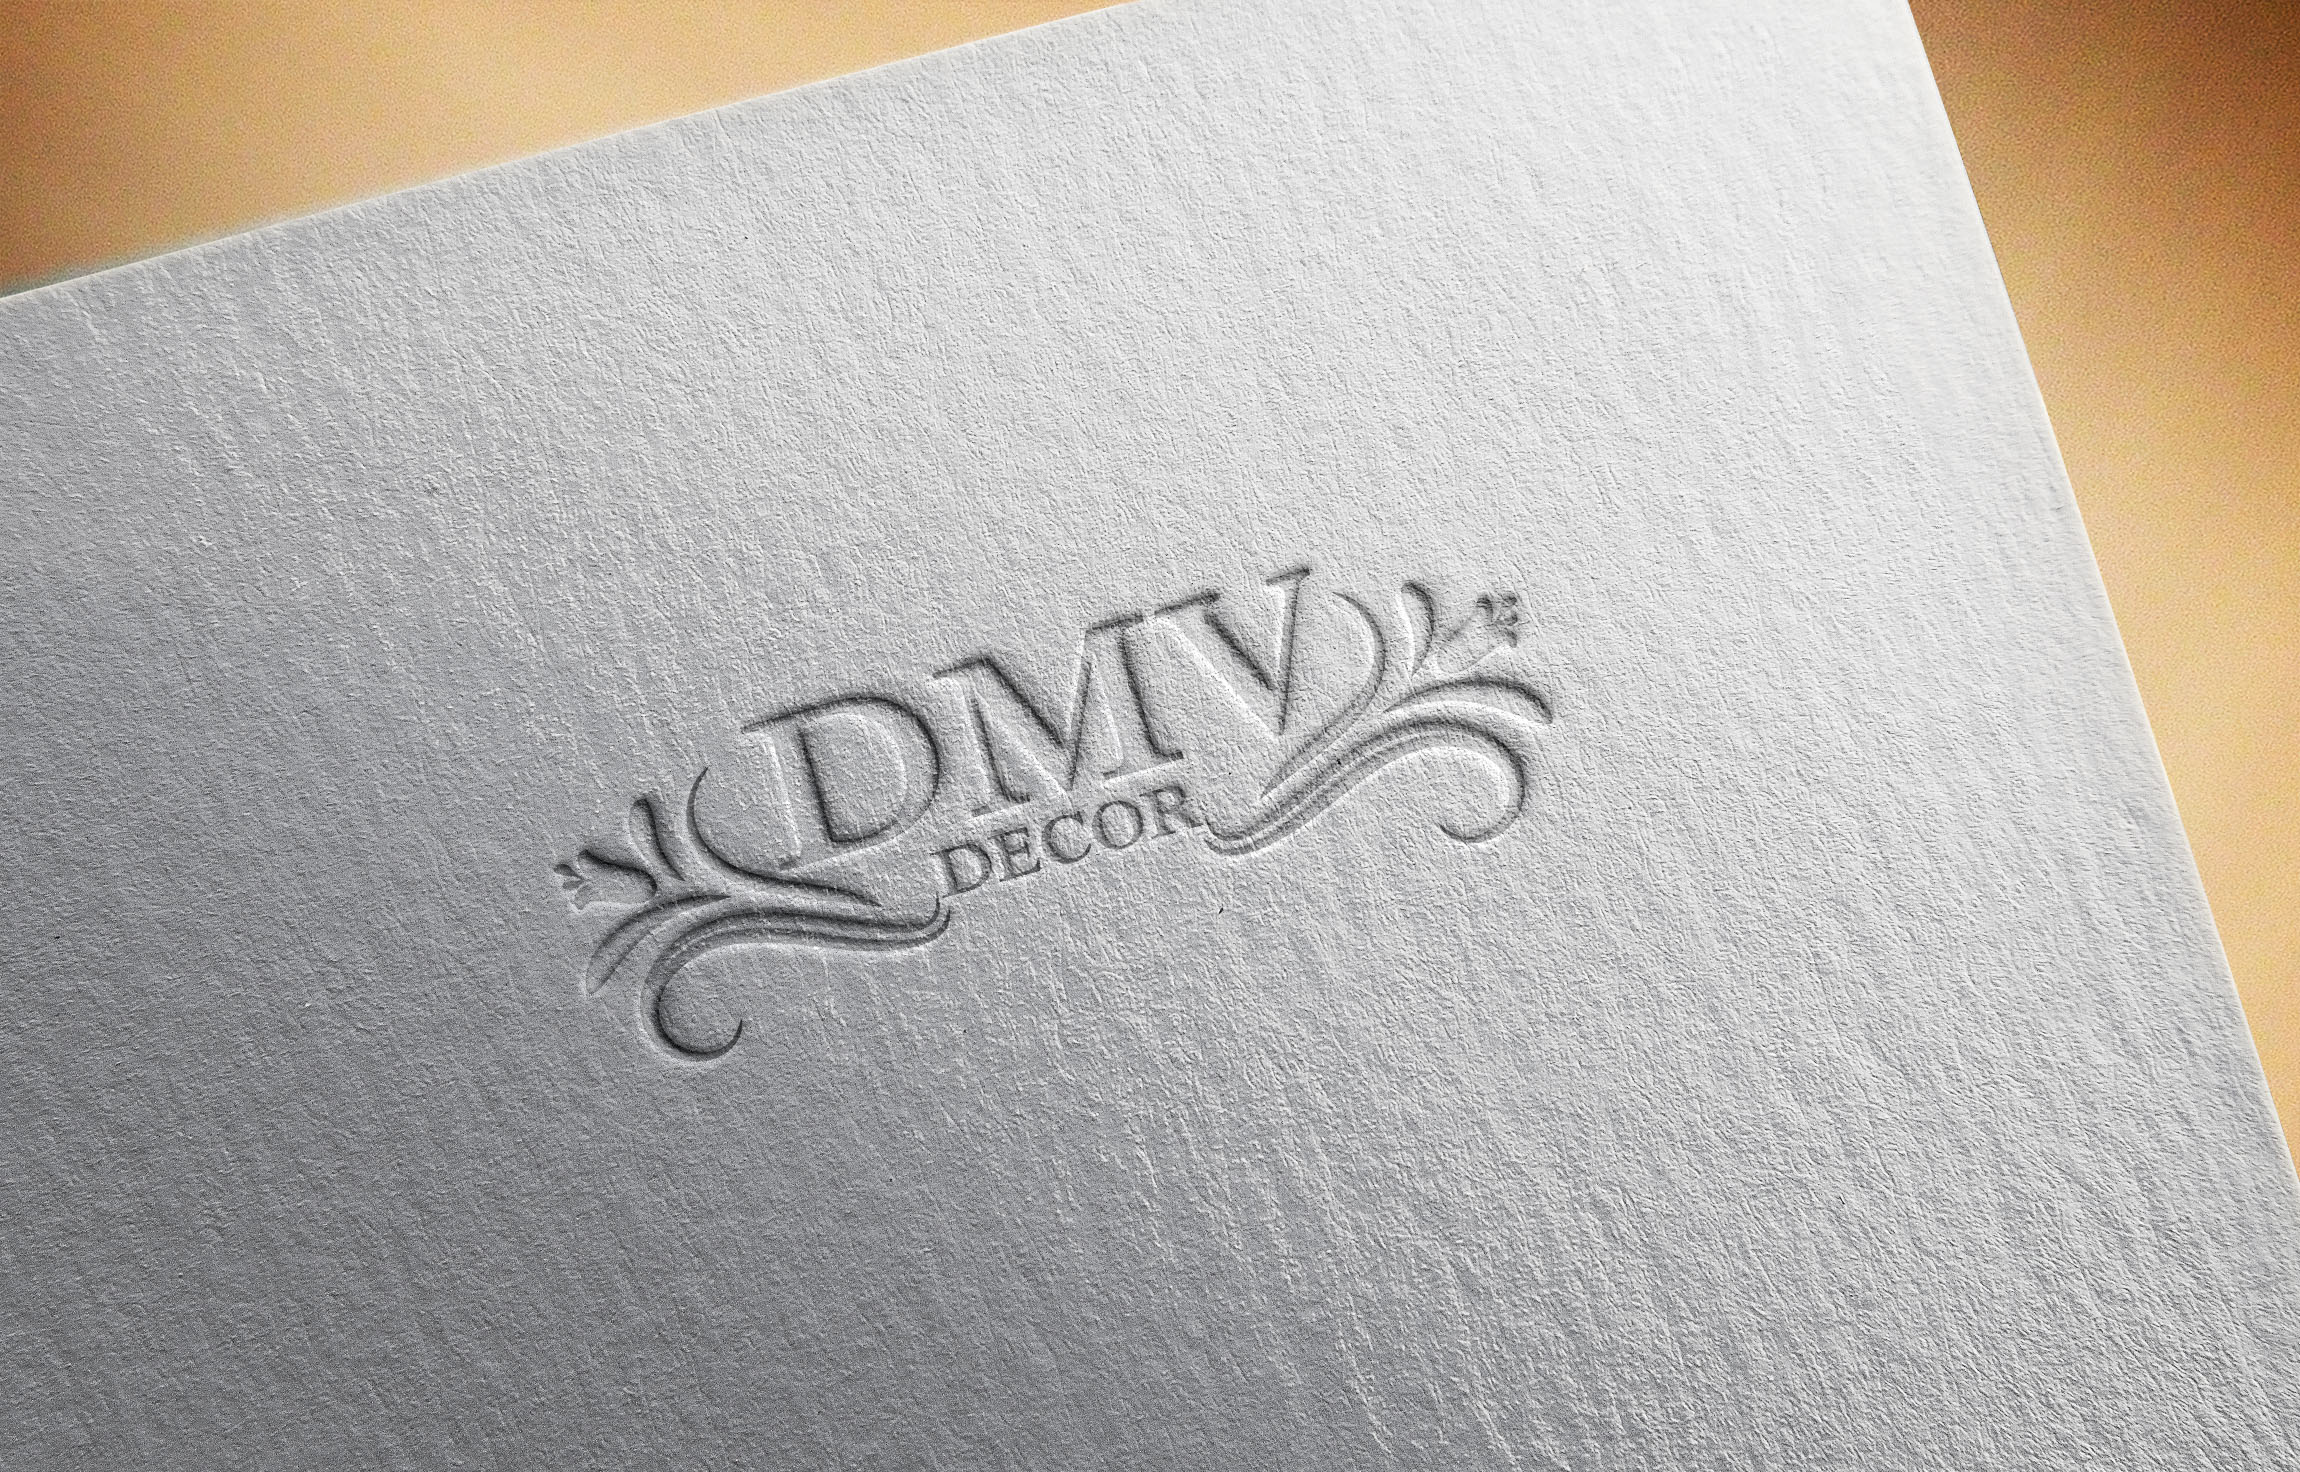 Logo Design by Raymond Garcia - Entry No. 201 in the Logo Design Contest dmvdecor Logo Design.